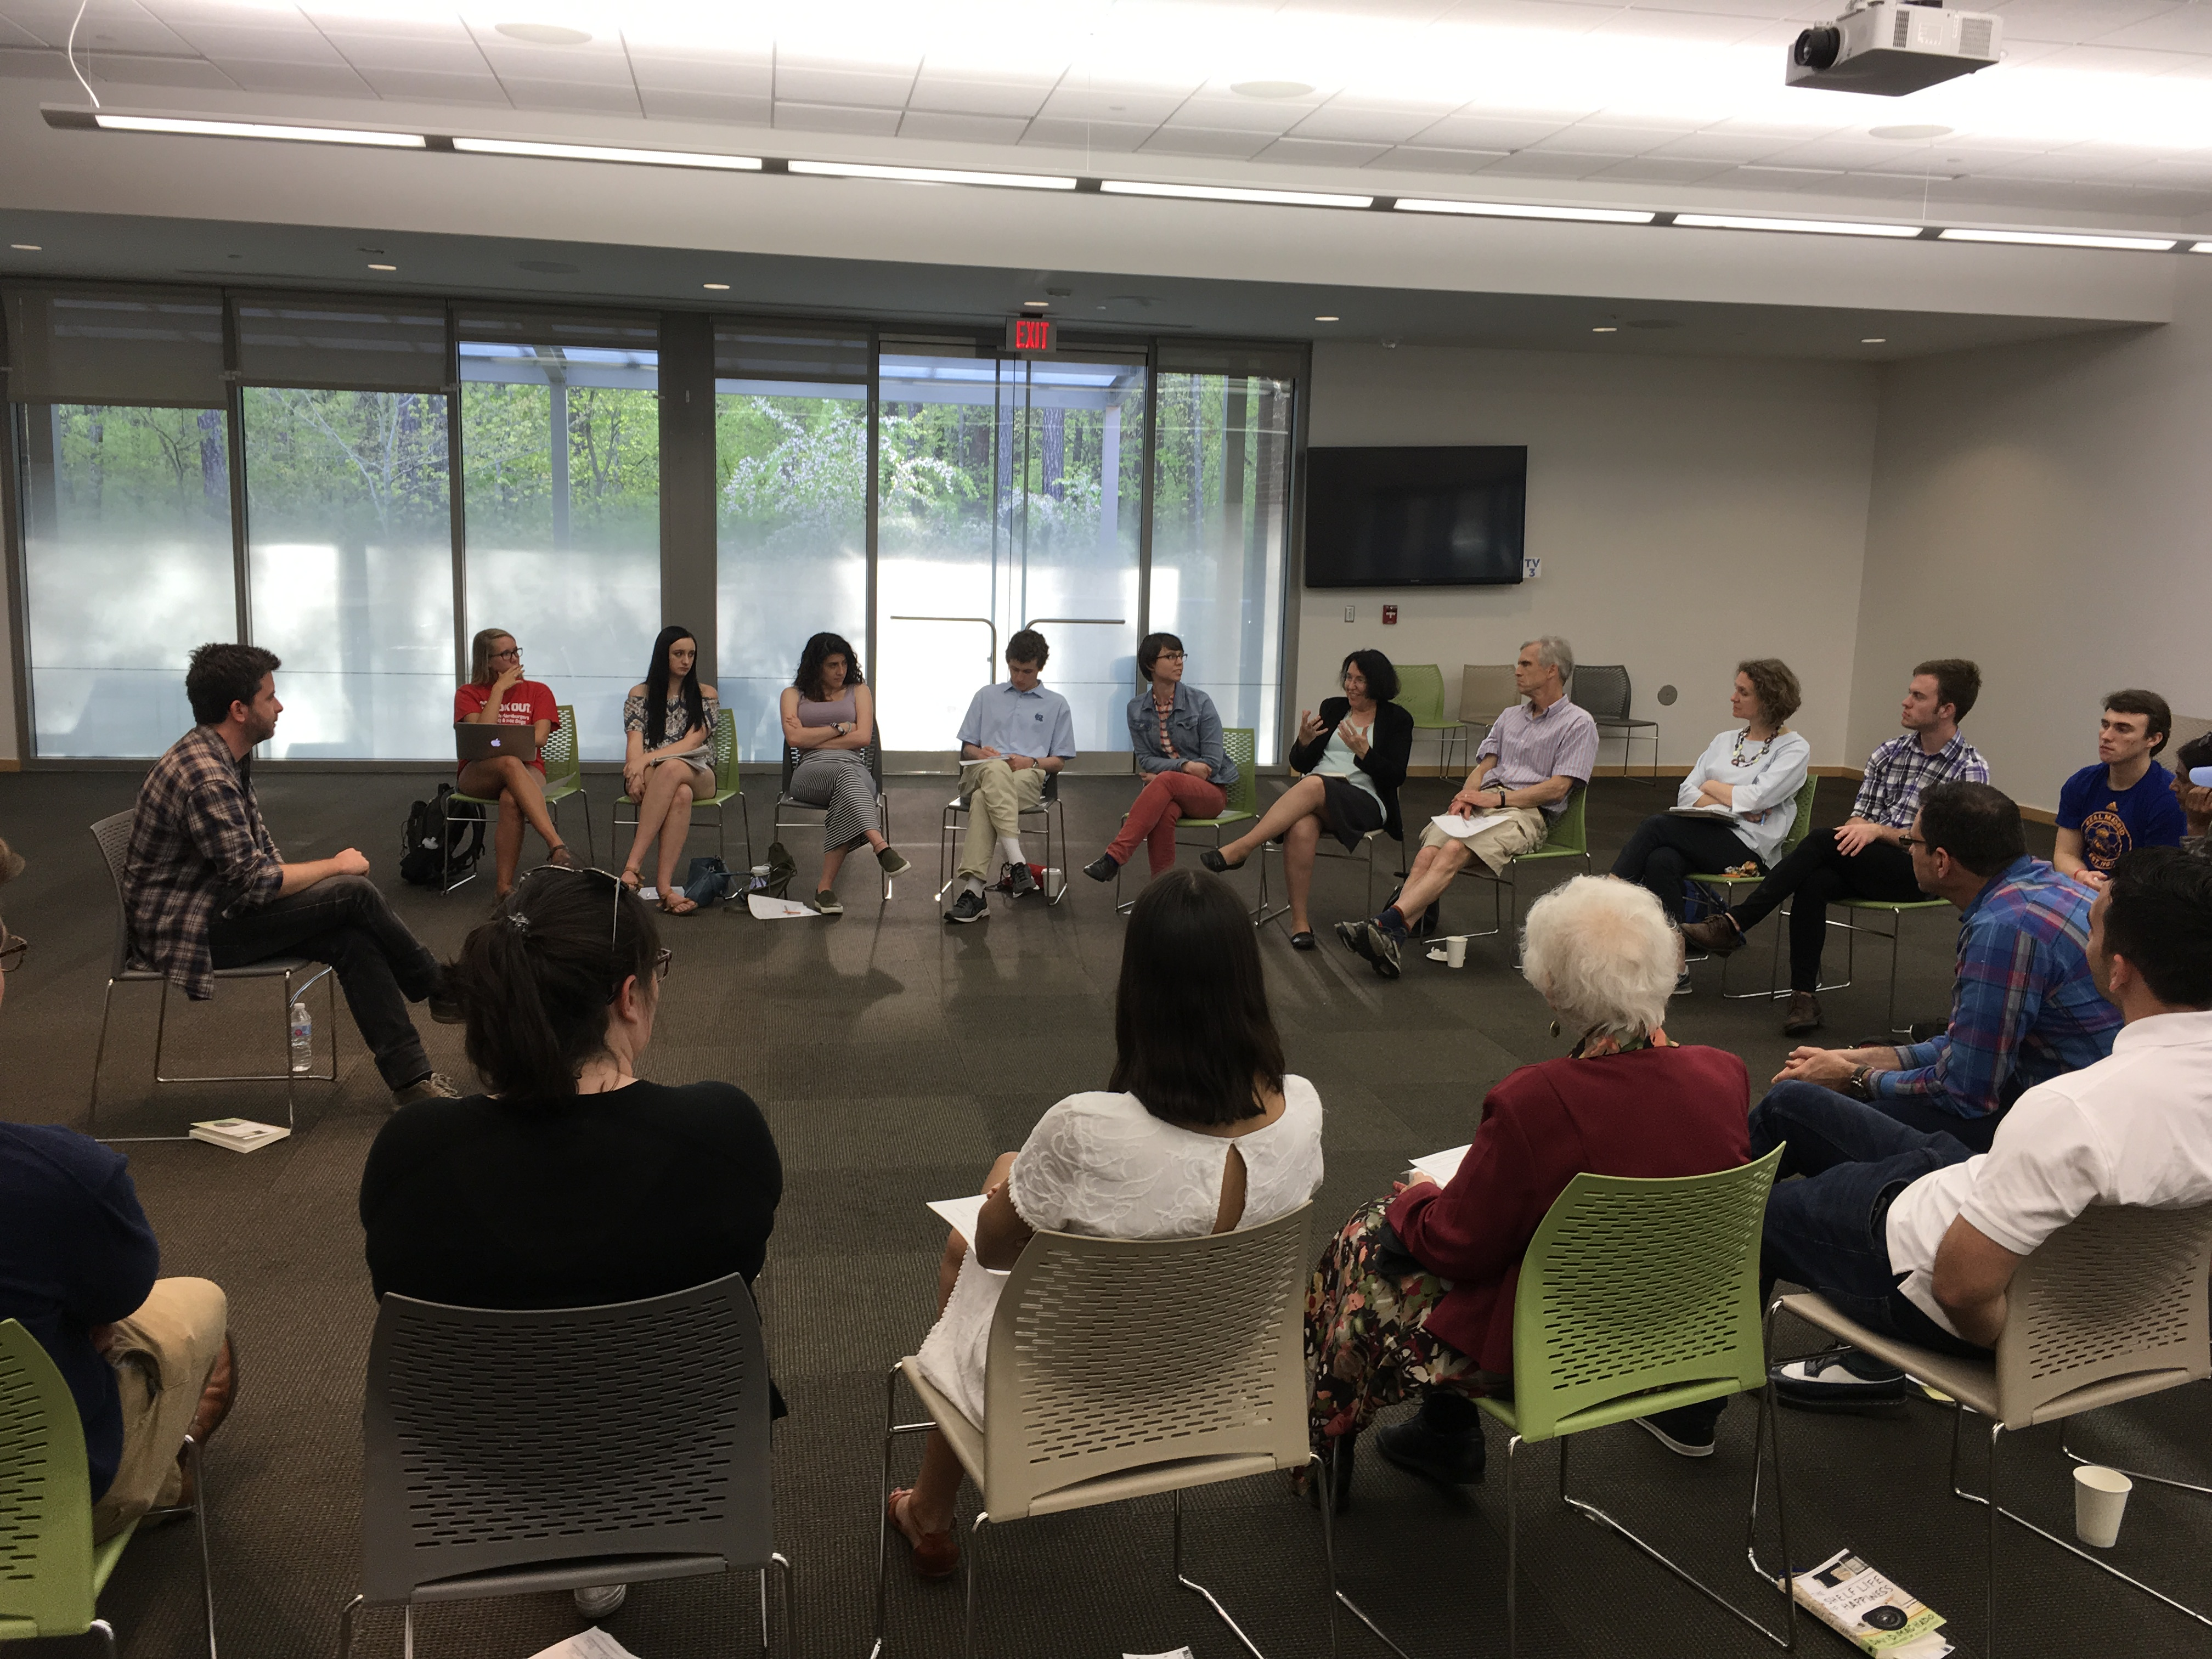 Author David Machado sits in front of a semicircle of chairs with people sitting in them at a room at the local library.